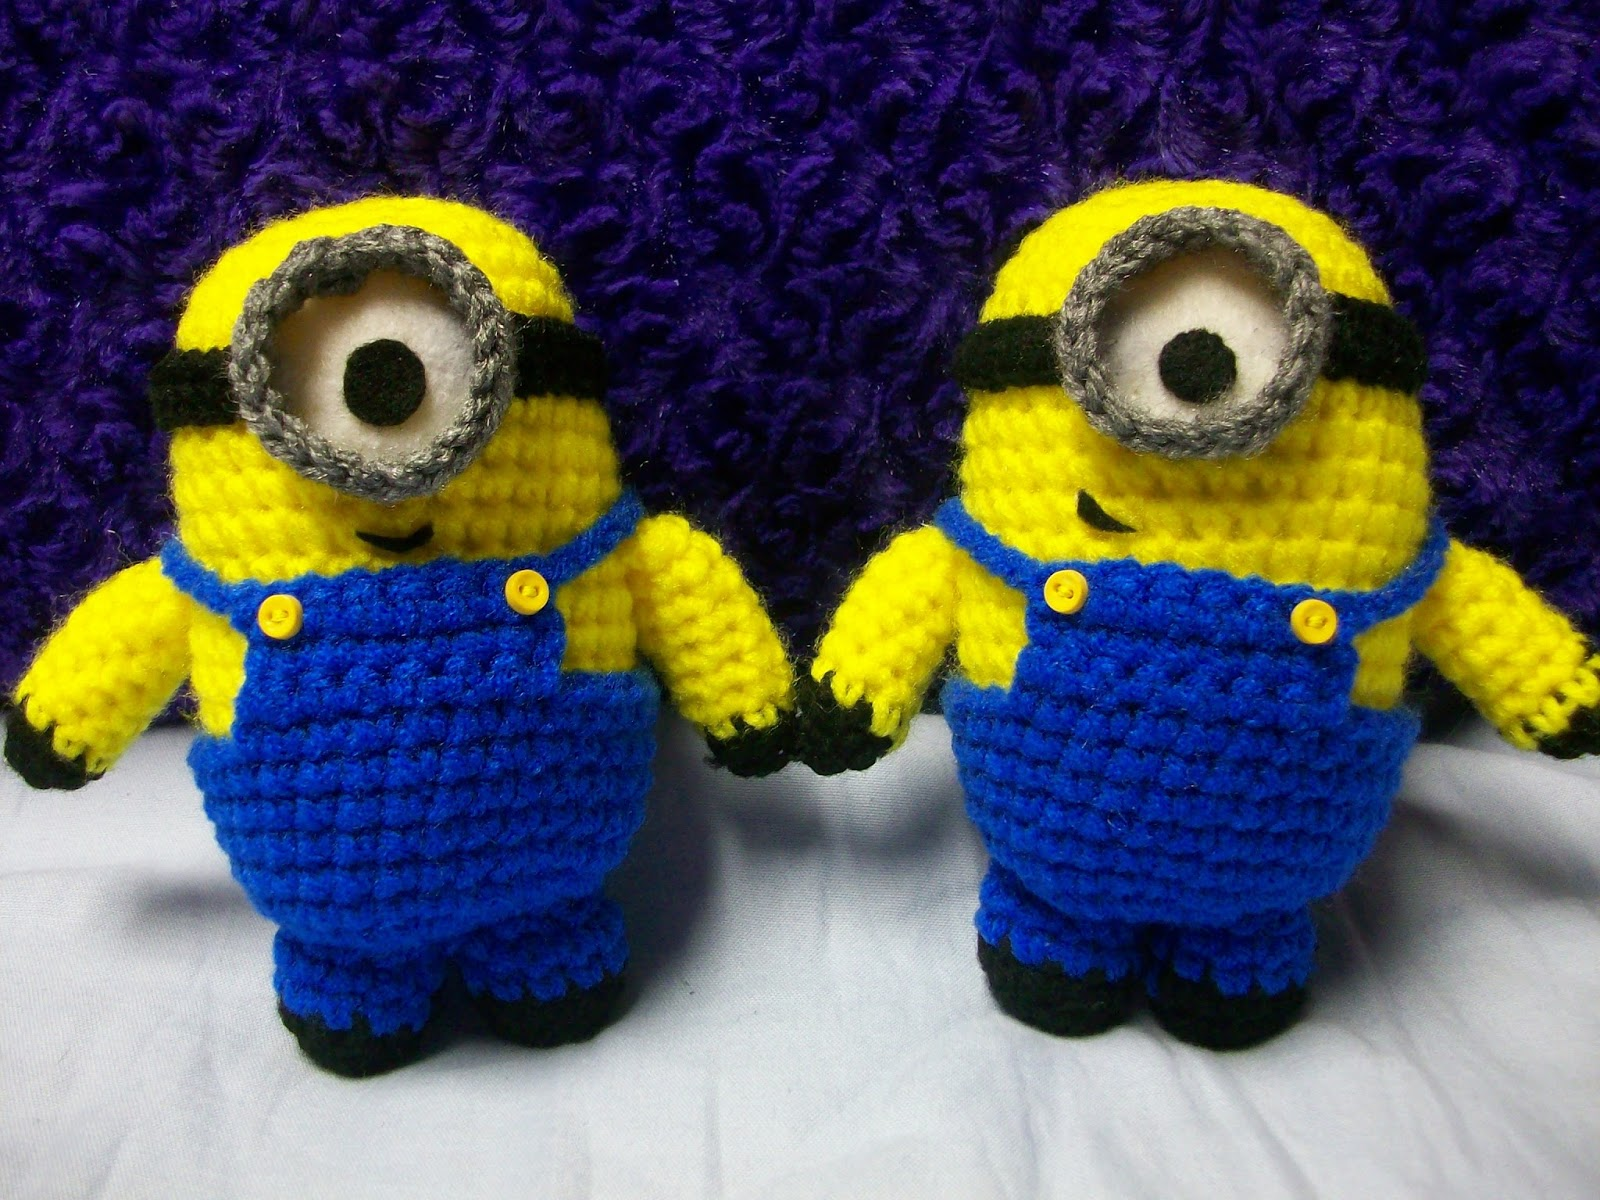 Free Crochet Pattern For Minion Toy : My Crocheted World: Despicable Me Minion Crochet Doll